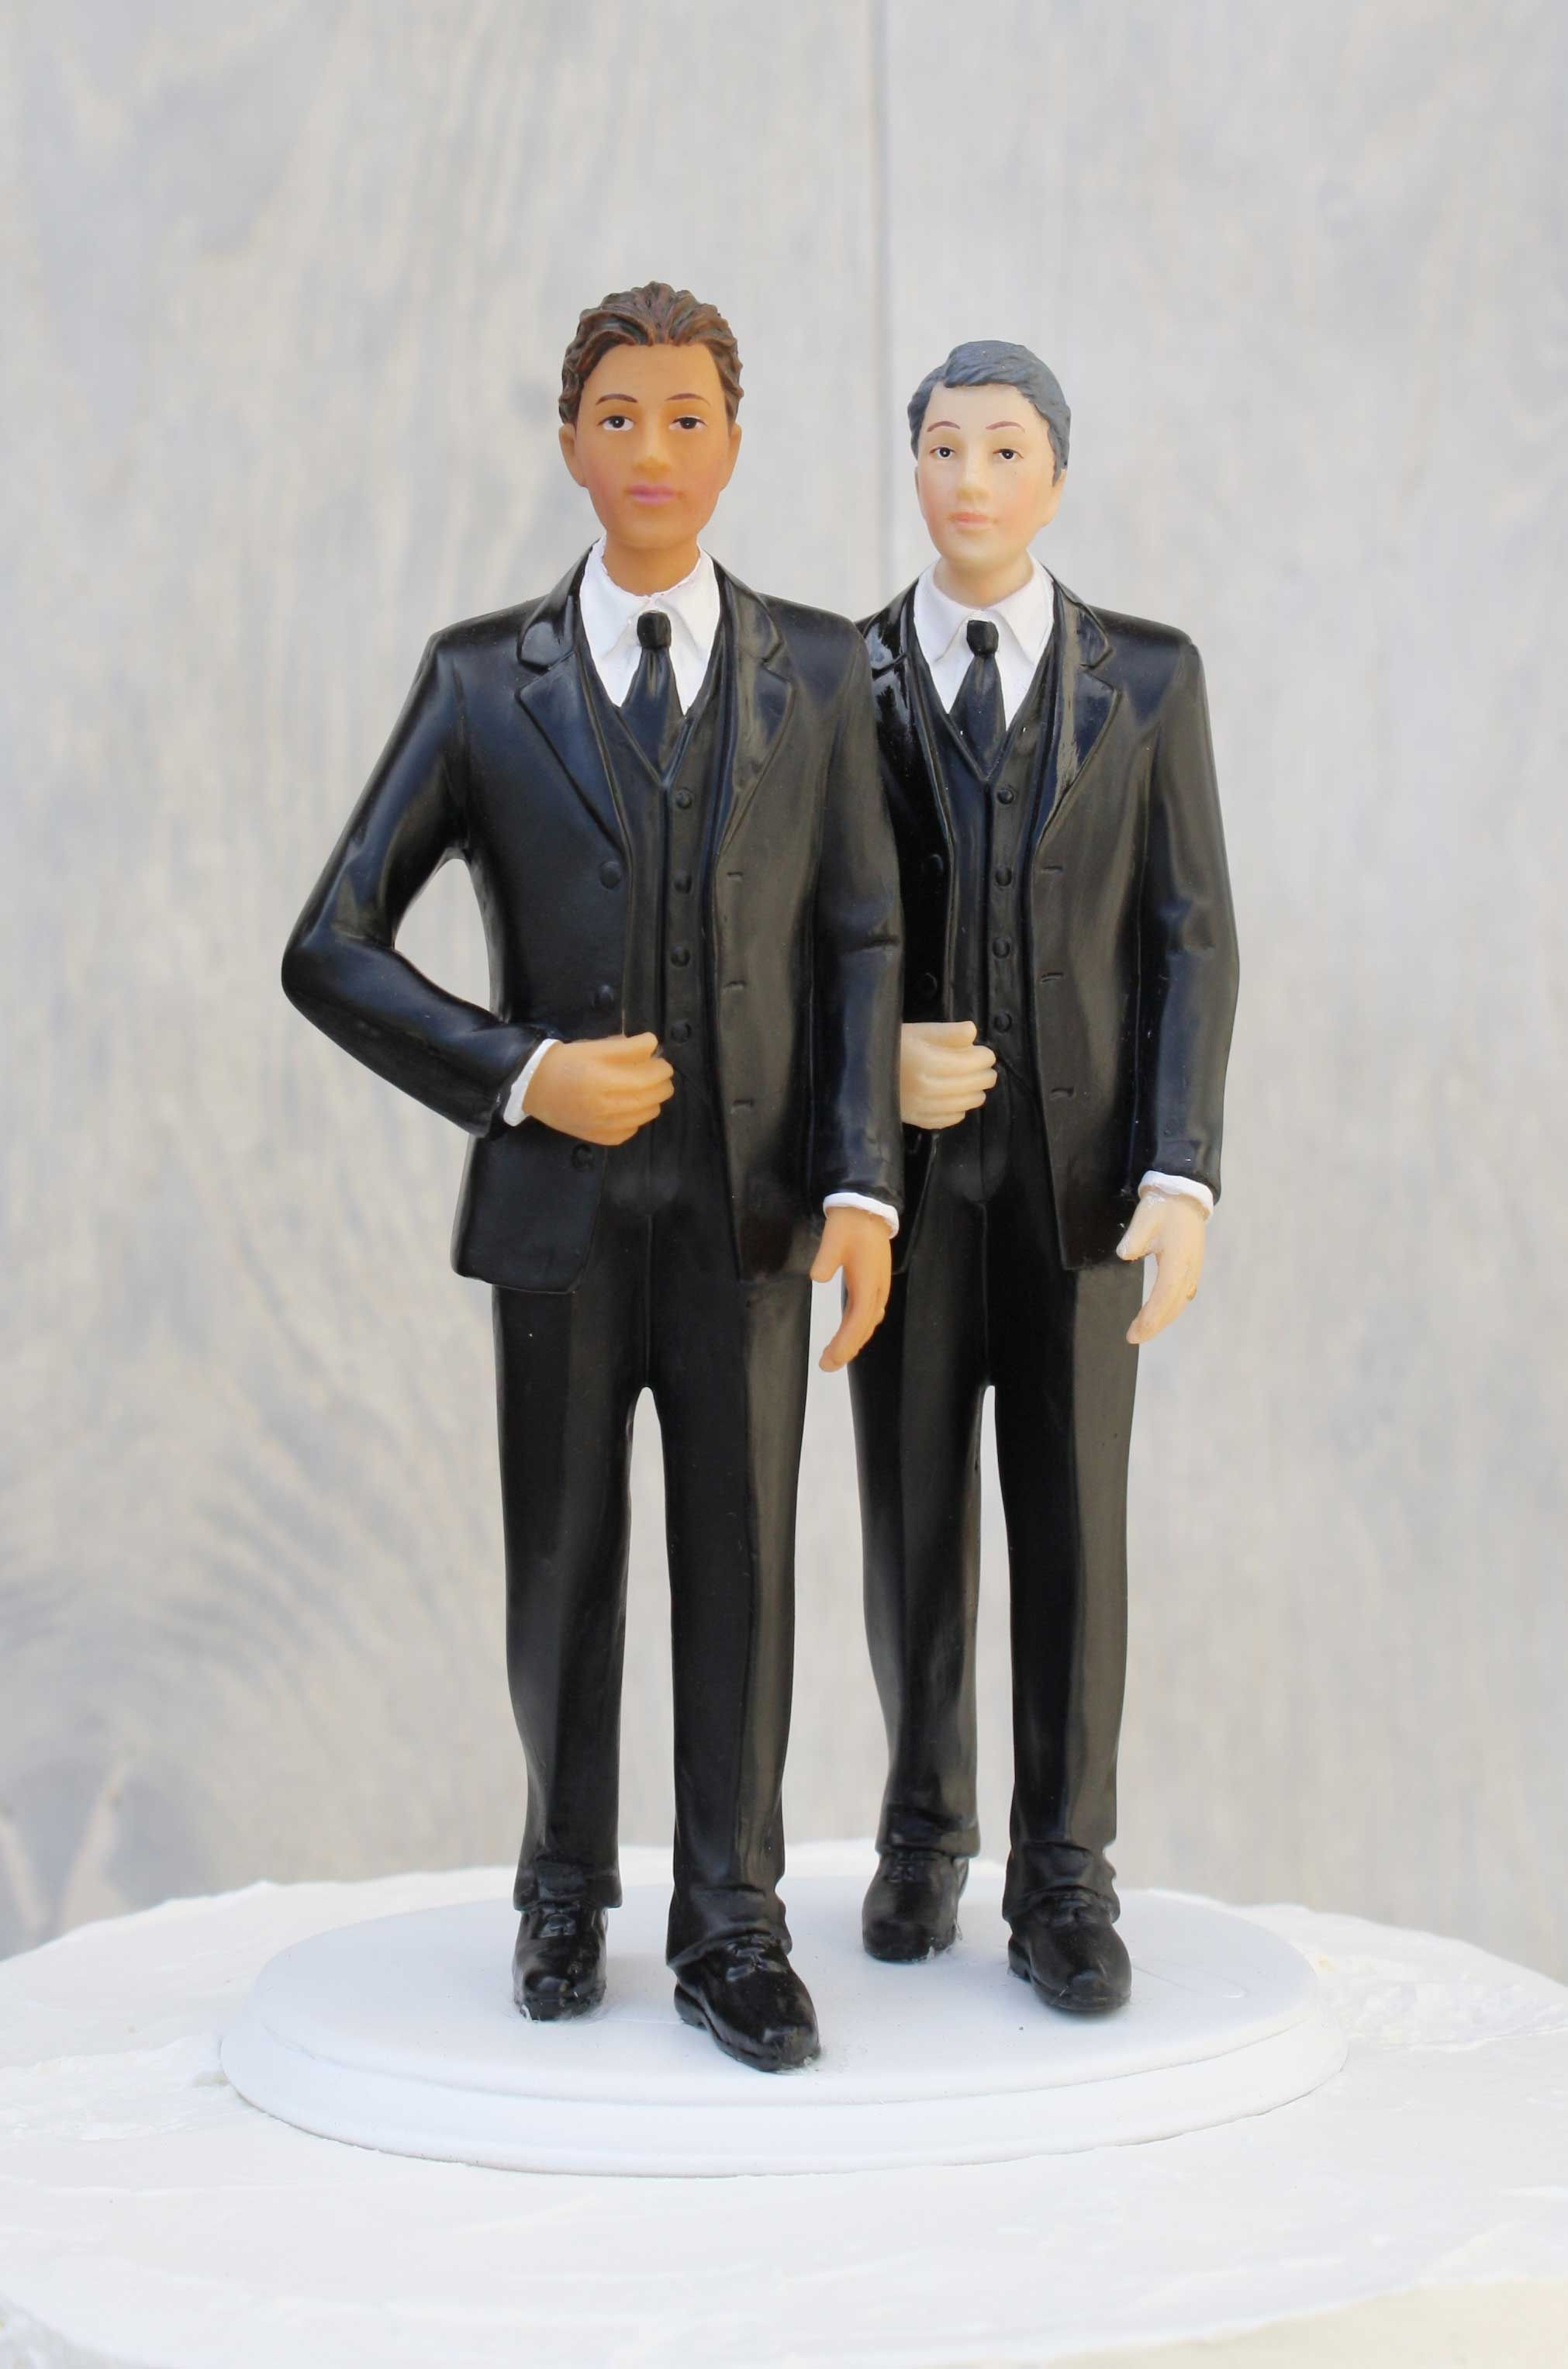 An Elegant Dark Skin Gay Cake Topper To Represent Your Union This Exquisite Wedding Is Made Of Resin